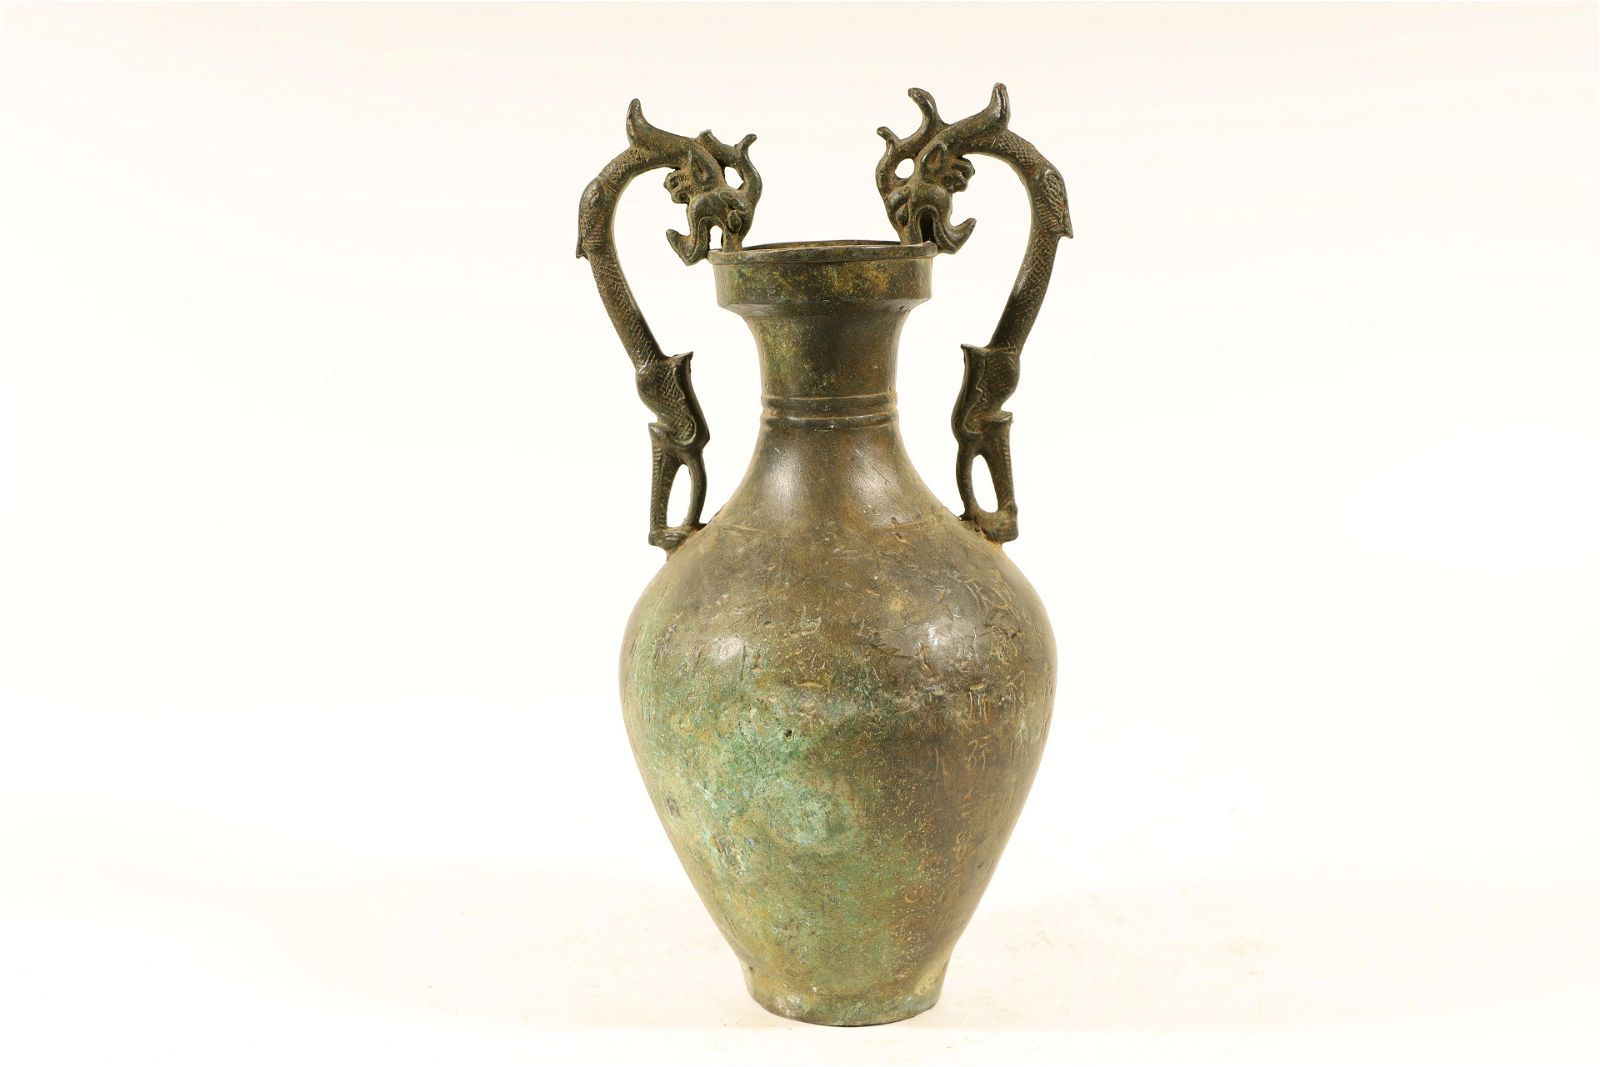 A Ming Dynasty bronze dragon vase with poem